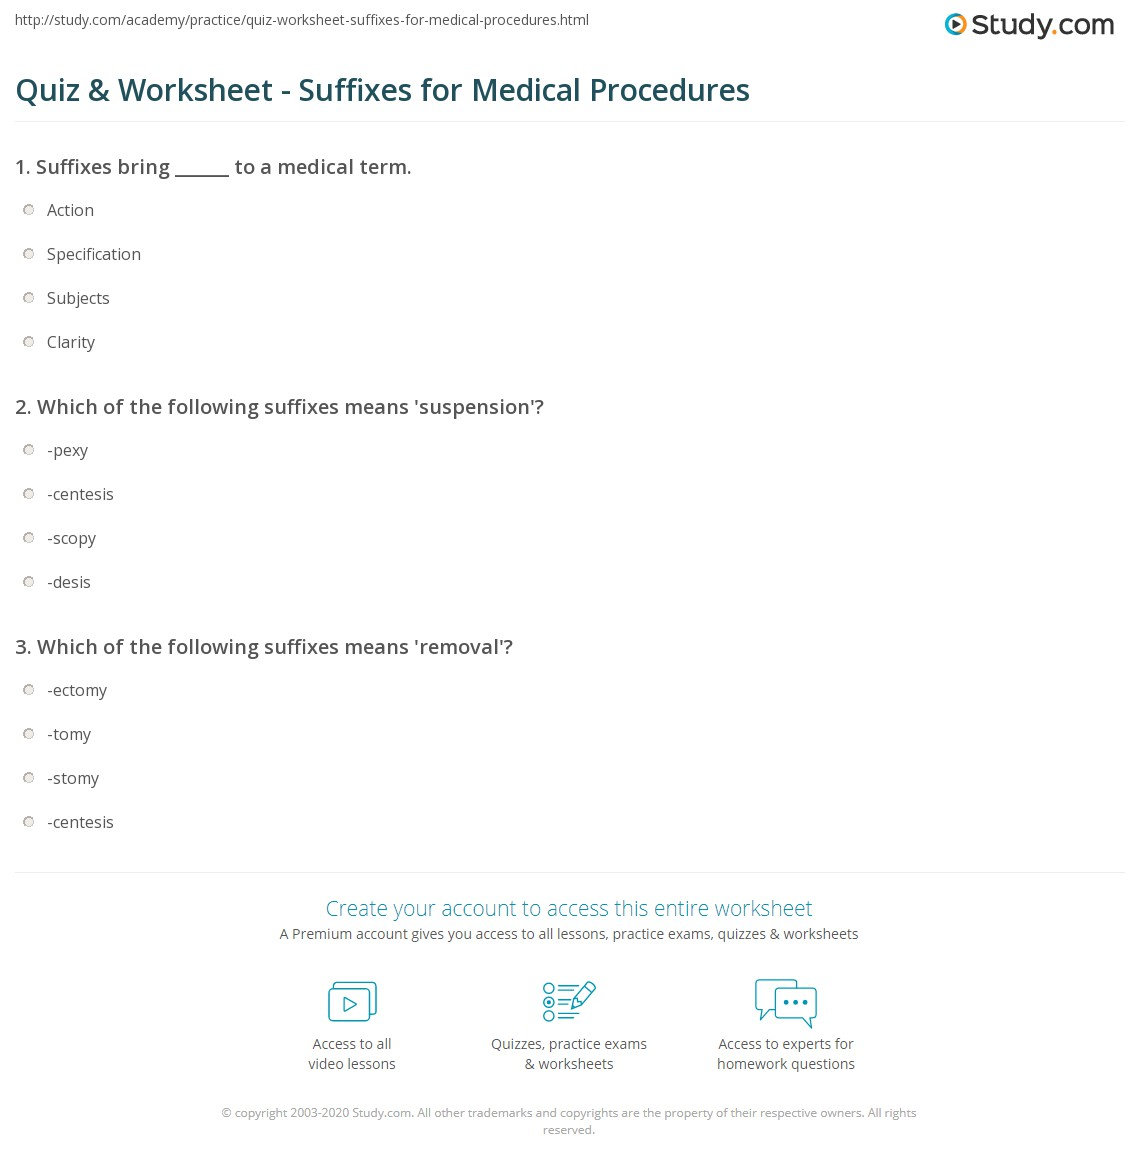 Quiz Worksheet Suffixes for Medical Procedures – Suffixes Worksheet